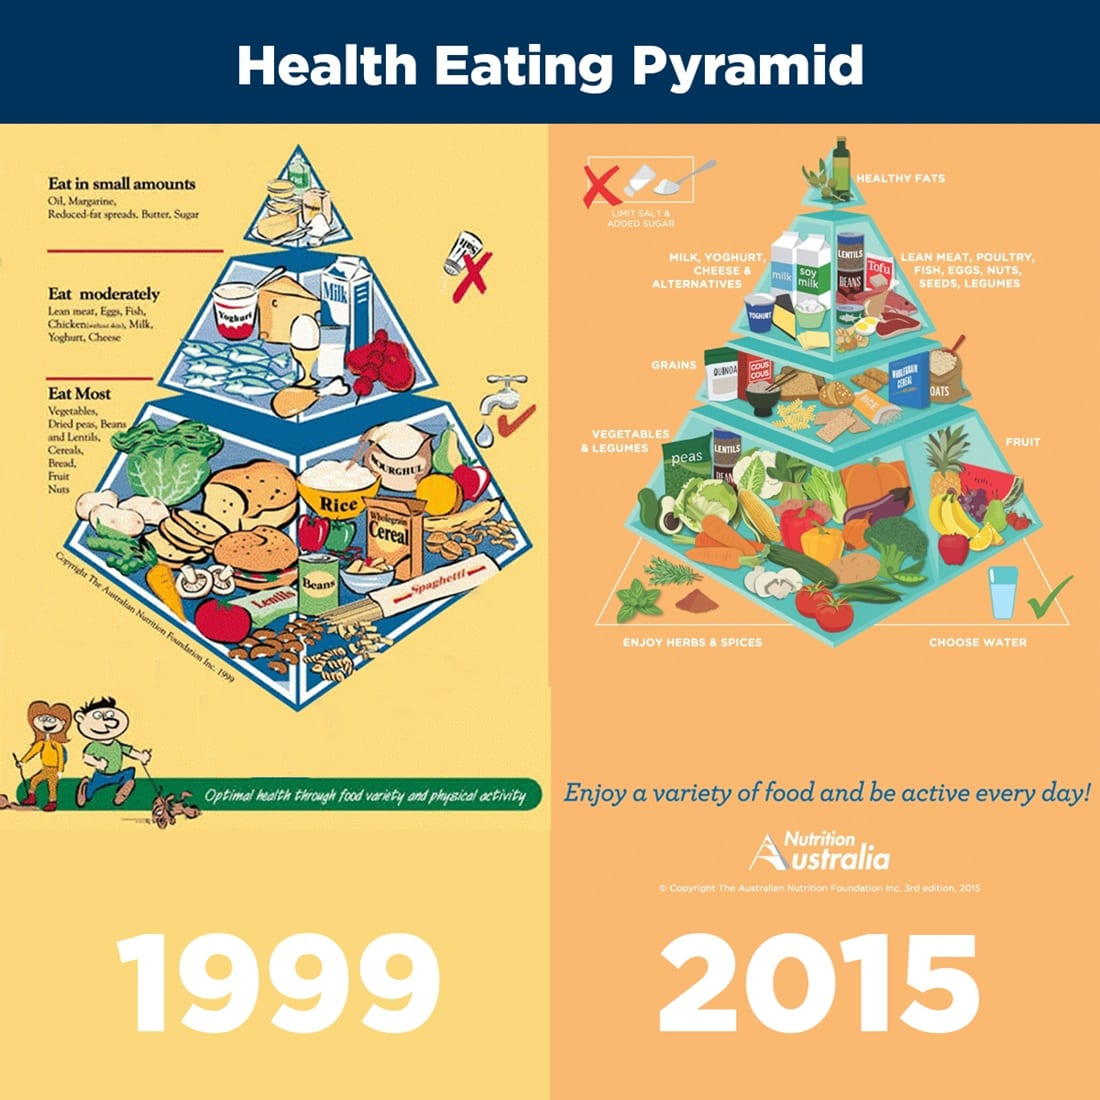 Healthy Food Pyramid Is Making You Fat - Sharny and Julius